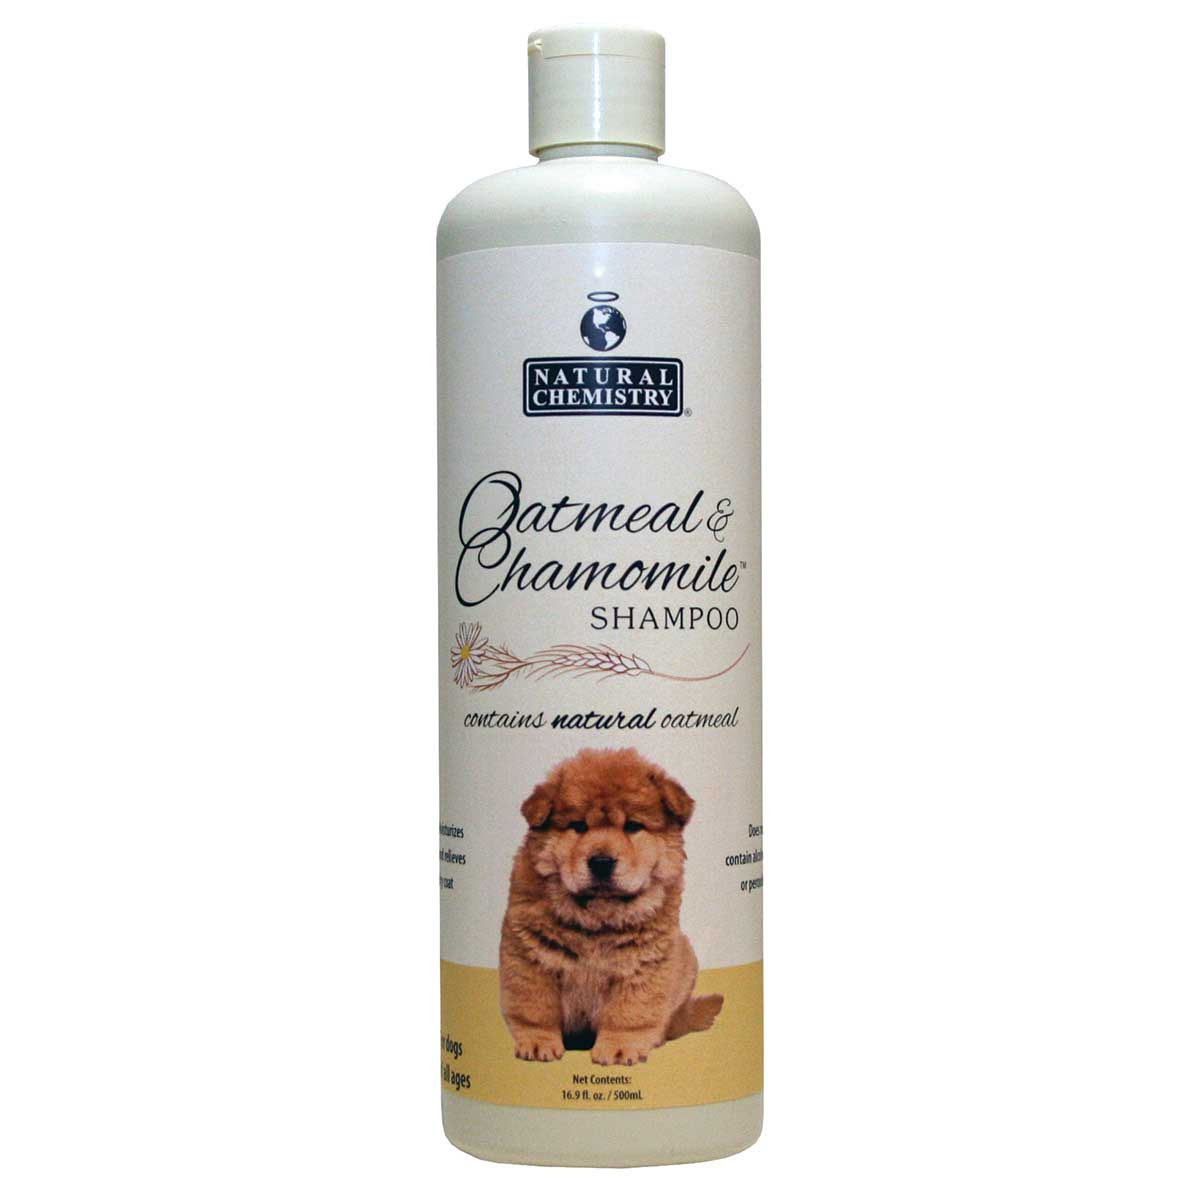 Natural Chemistry Oatmeal & Chamomile Shampoo for Dogs - 16.9 oz